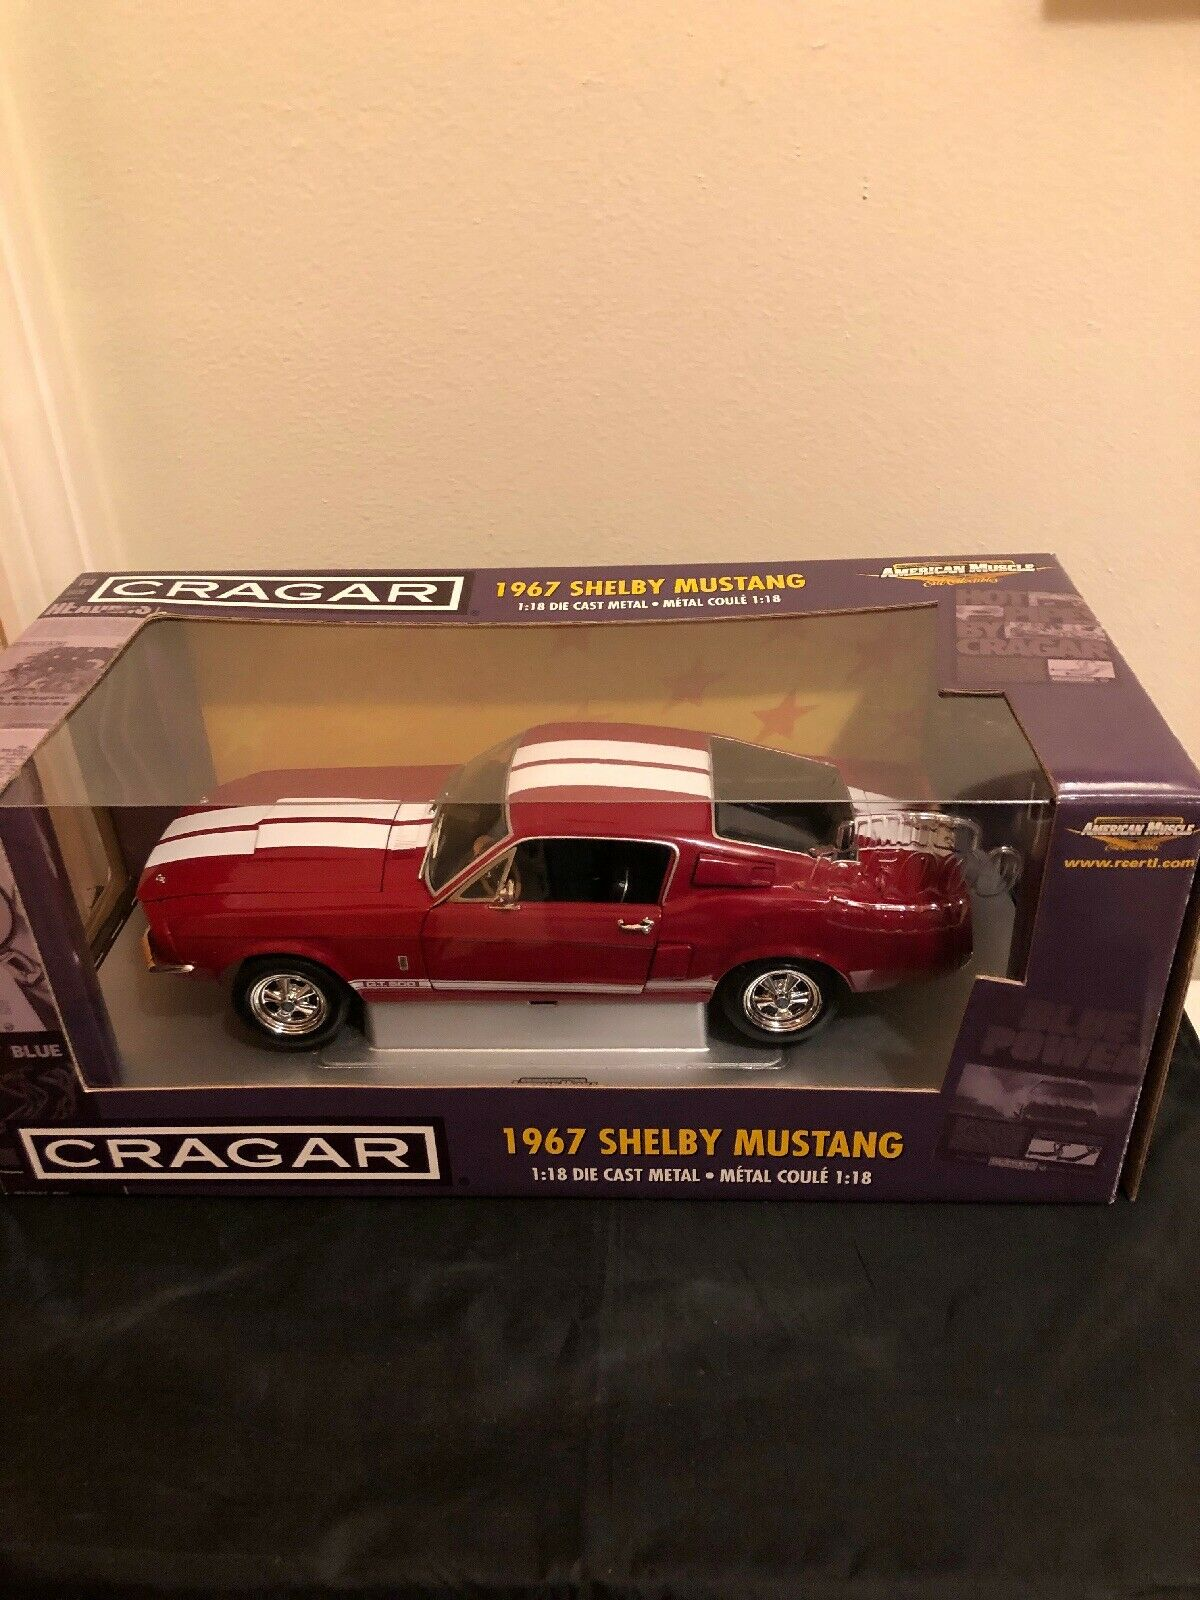 1967 Shelby Mustang GT500 rosso CRAGER Edition 1 18 Ertl American Muscle 33713